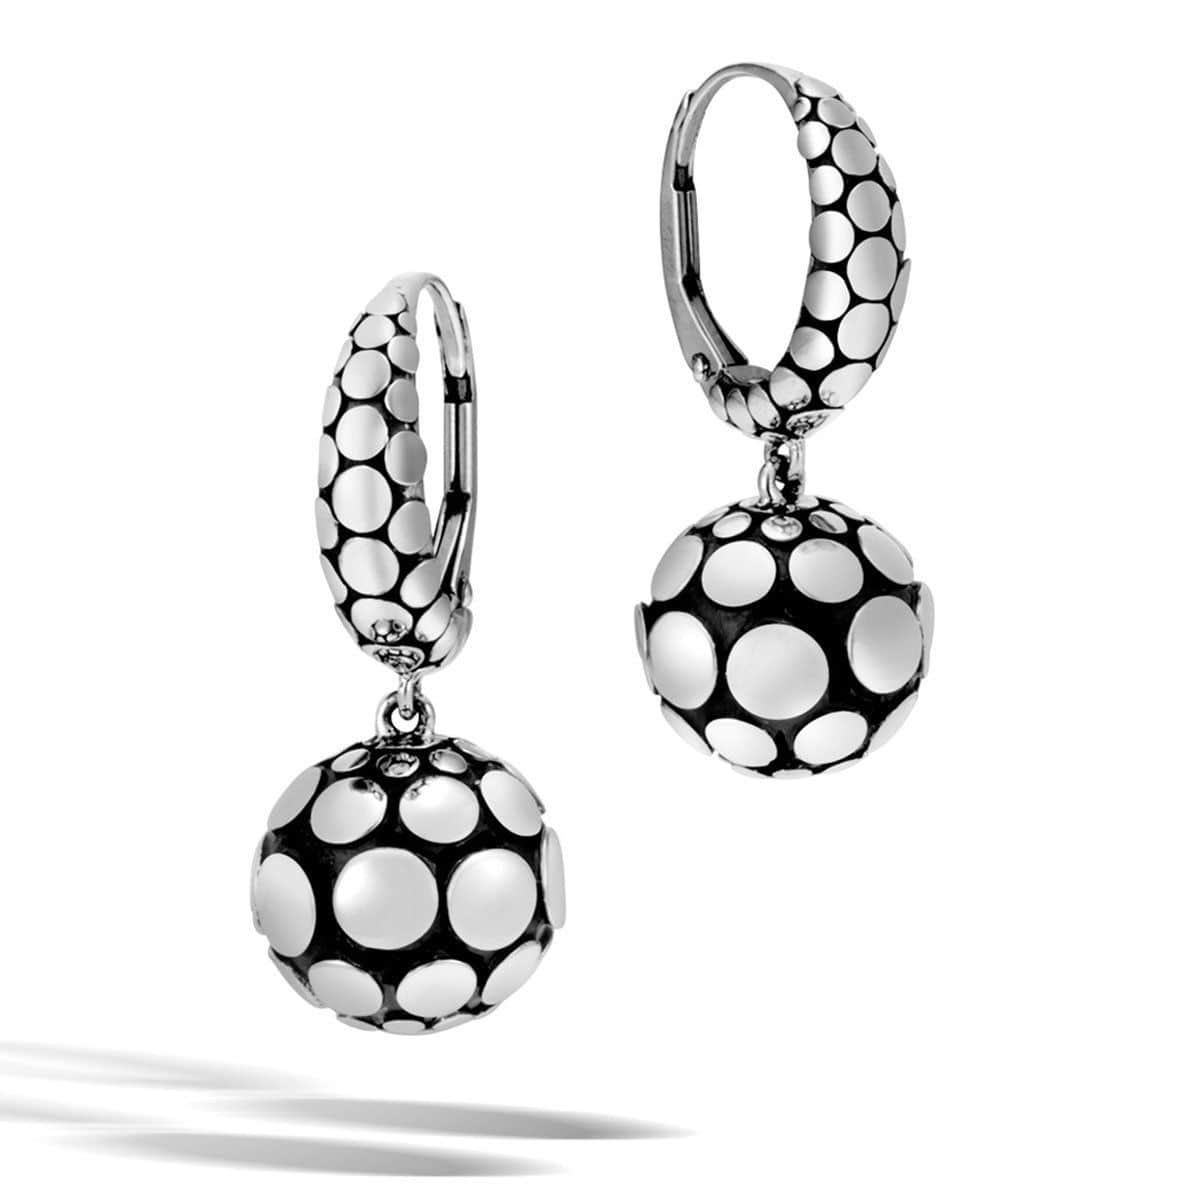 Dot Sterling Silver Drop Earrings - EB39243-John Hardy-Renee Taylor Gallery